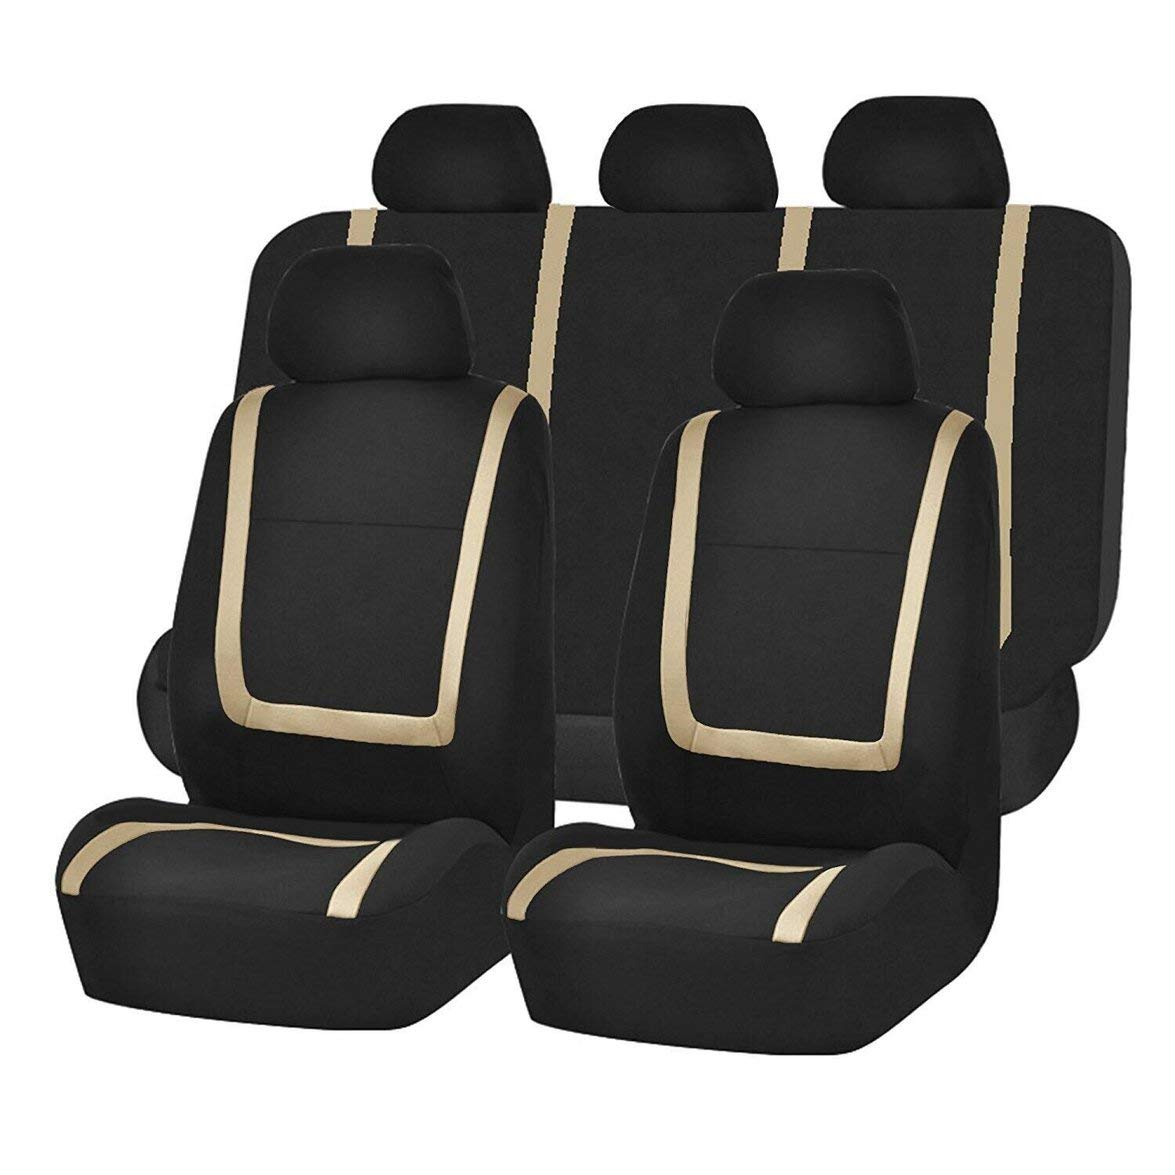 Kongqiabona 9pcs/Set Fashion Striped Car Seat Covers Dustproof Washable Seat Protectors Universal Full Seat Covers for Auto Cars